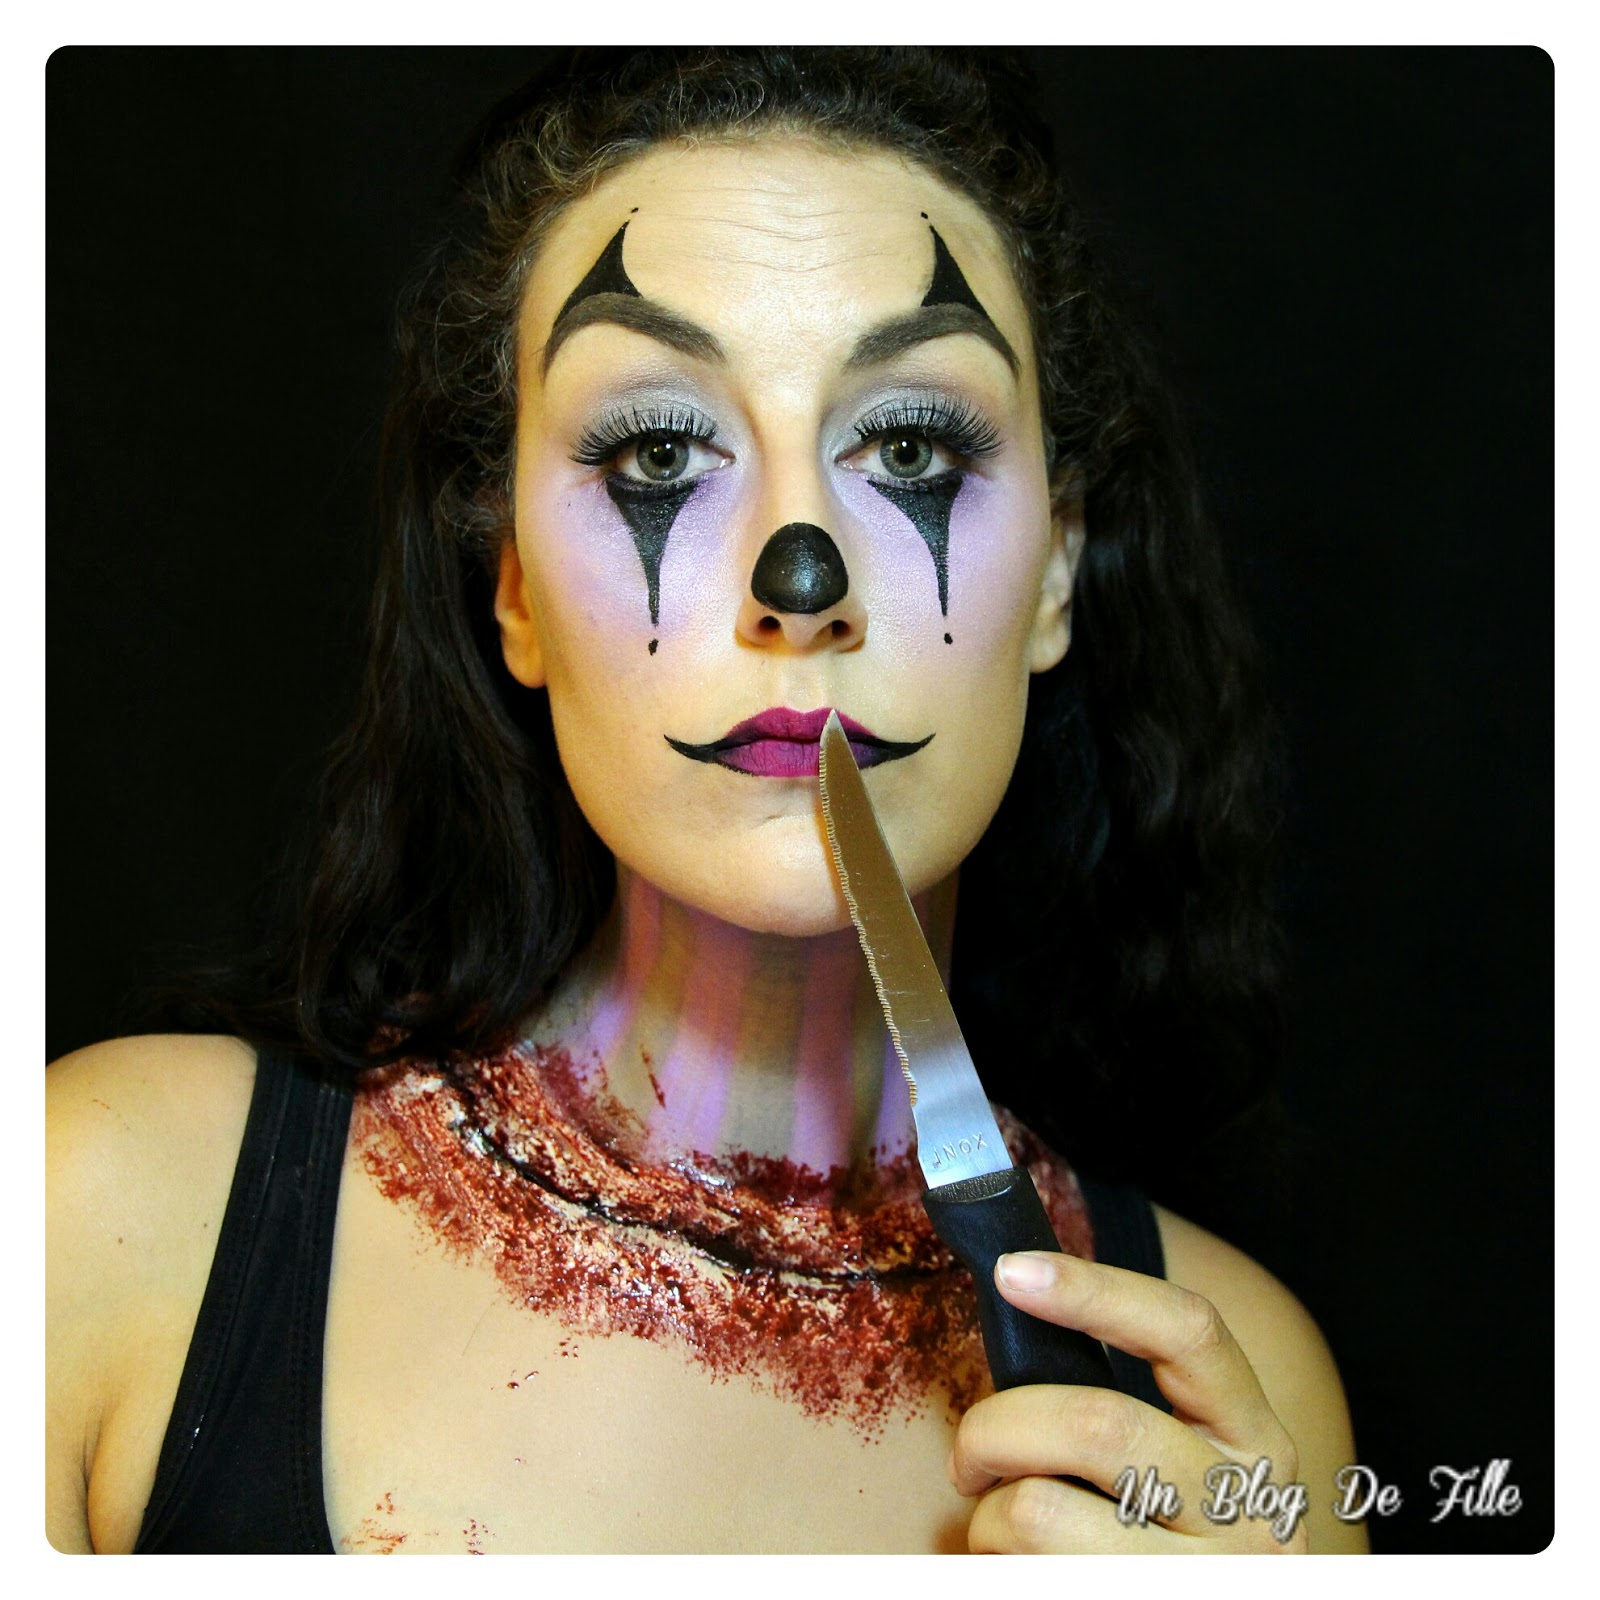 http://unblogdefille.blogspot.fr/2017/10/maquillage-halloween-clown-malefique.html